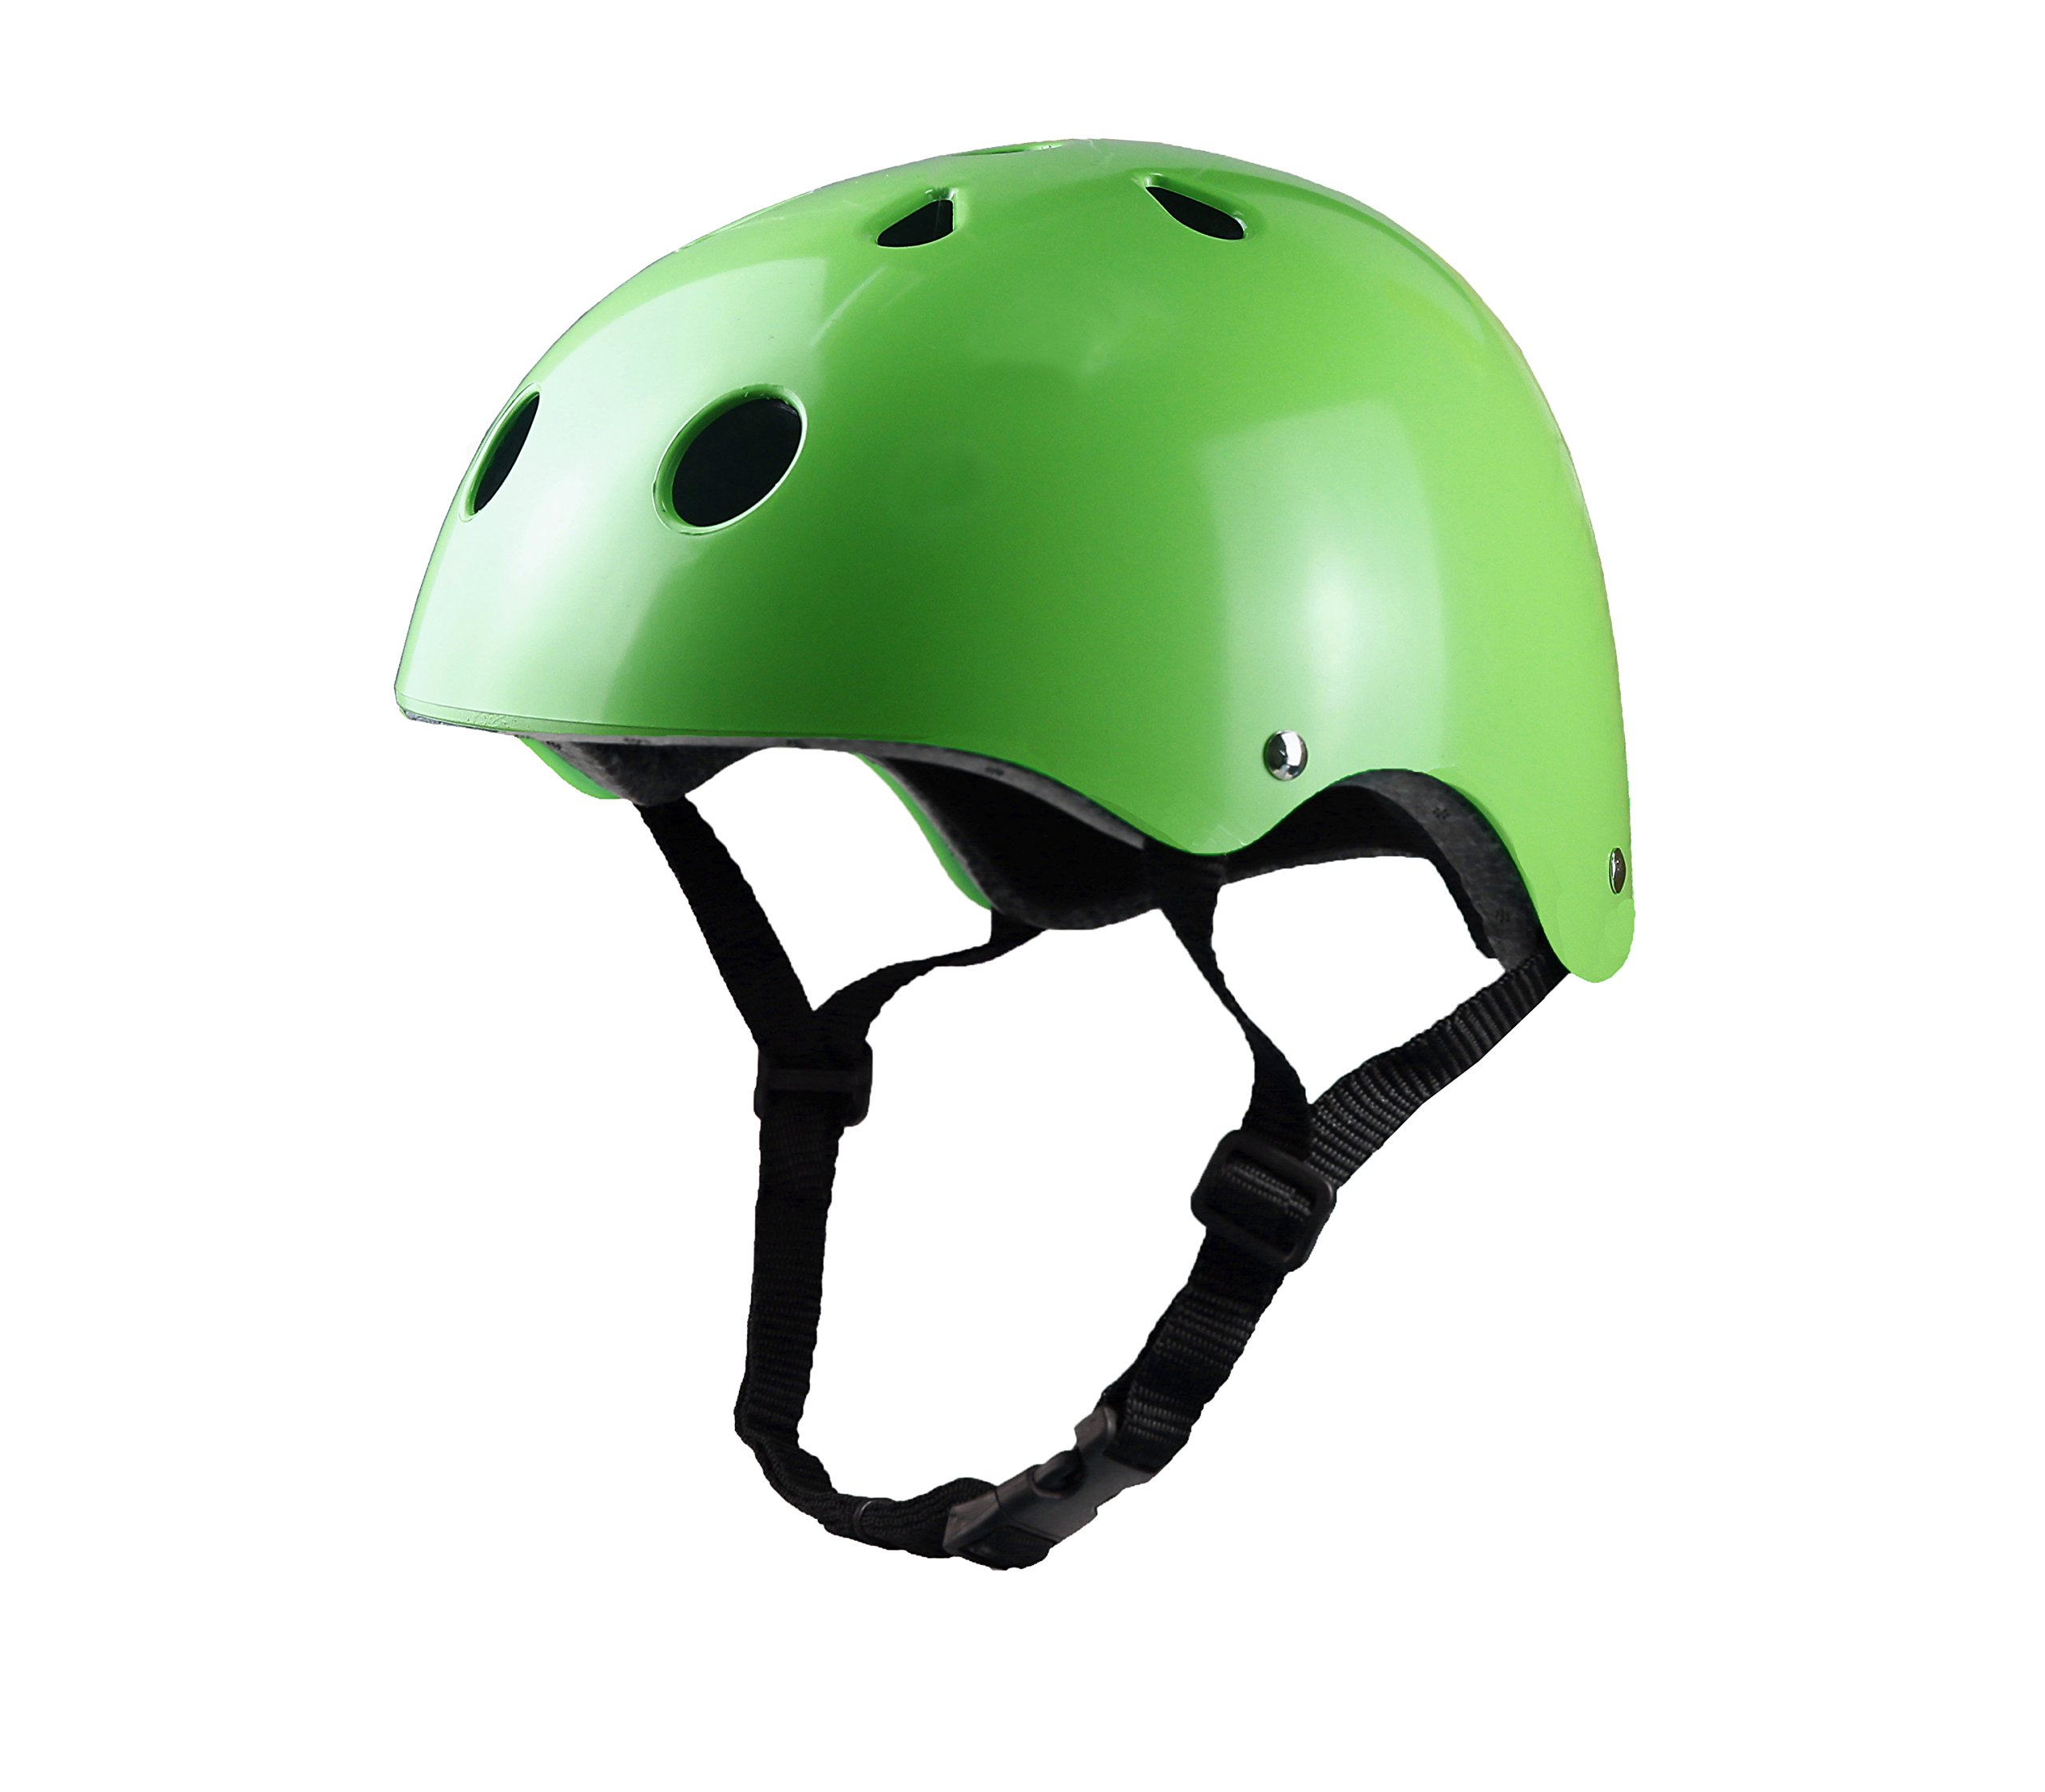 Tourdarson Adult Skateboard Helmet Specialized Certified Protection Sport for Scooter Skate Skateboarding Cycling (Green,Large)